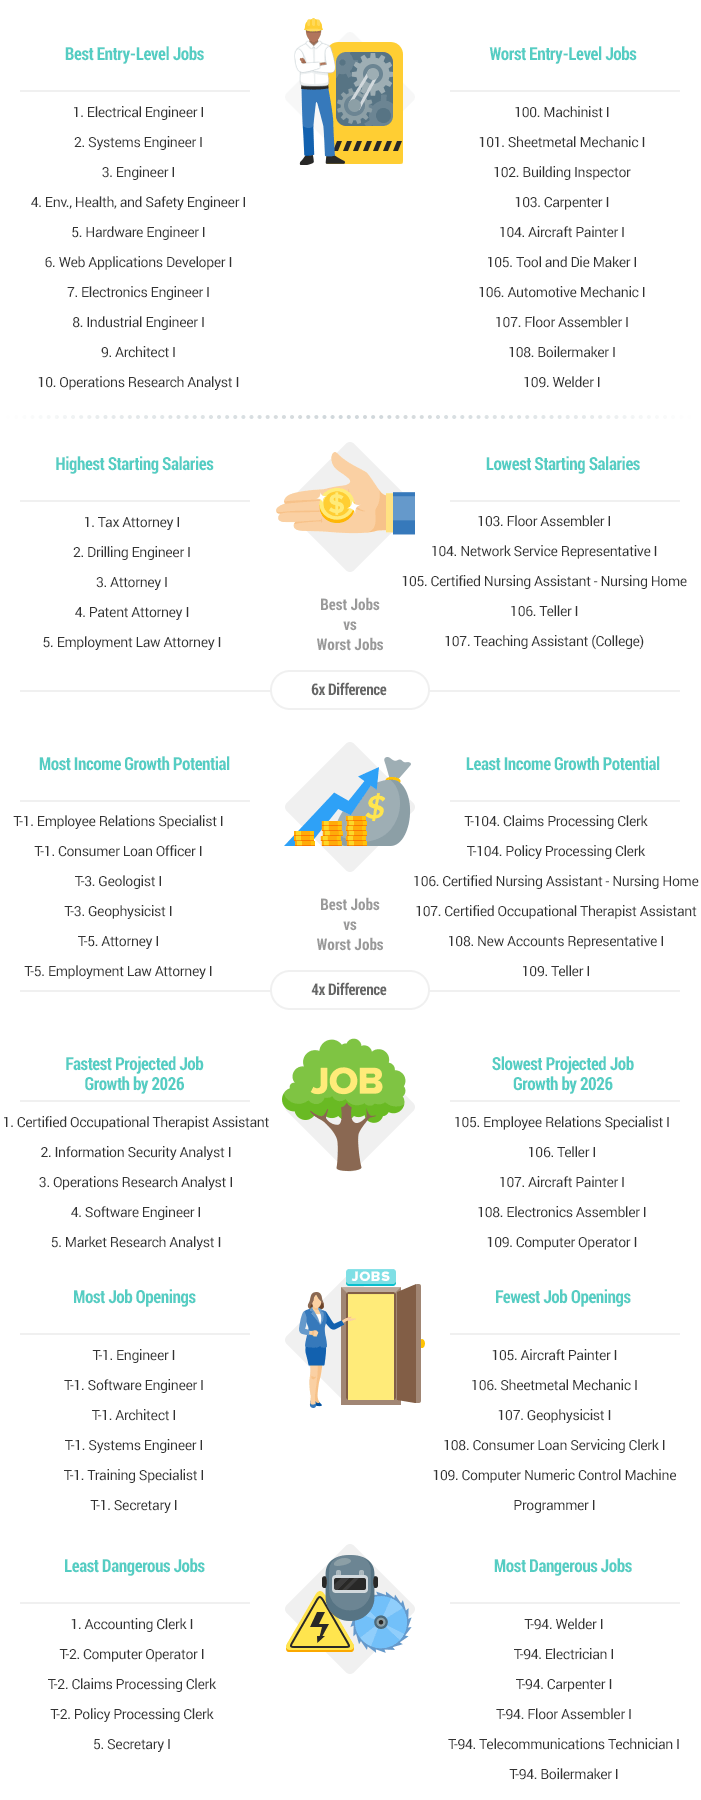 Best & Worst Entry-Level Jobs